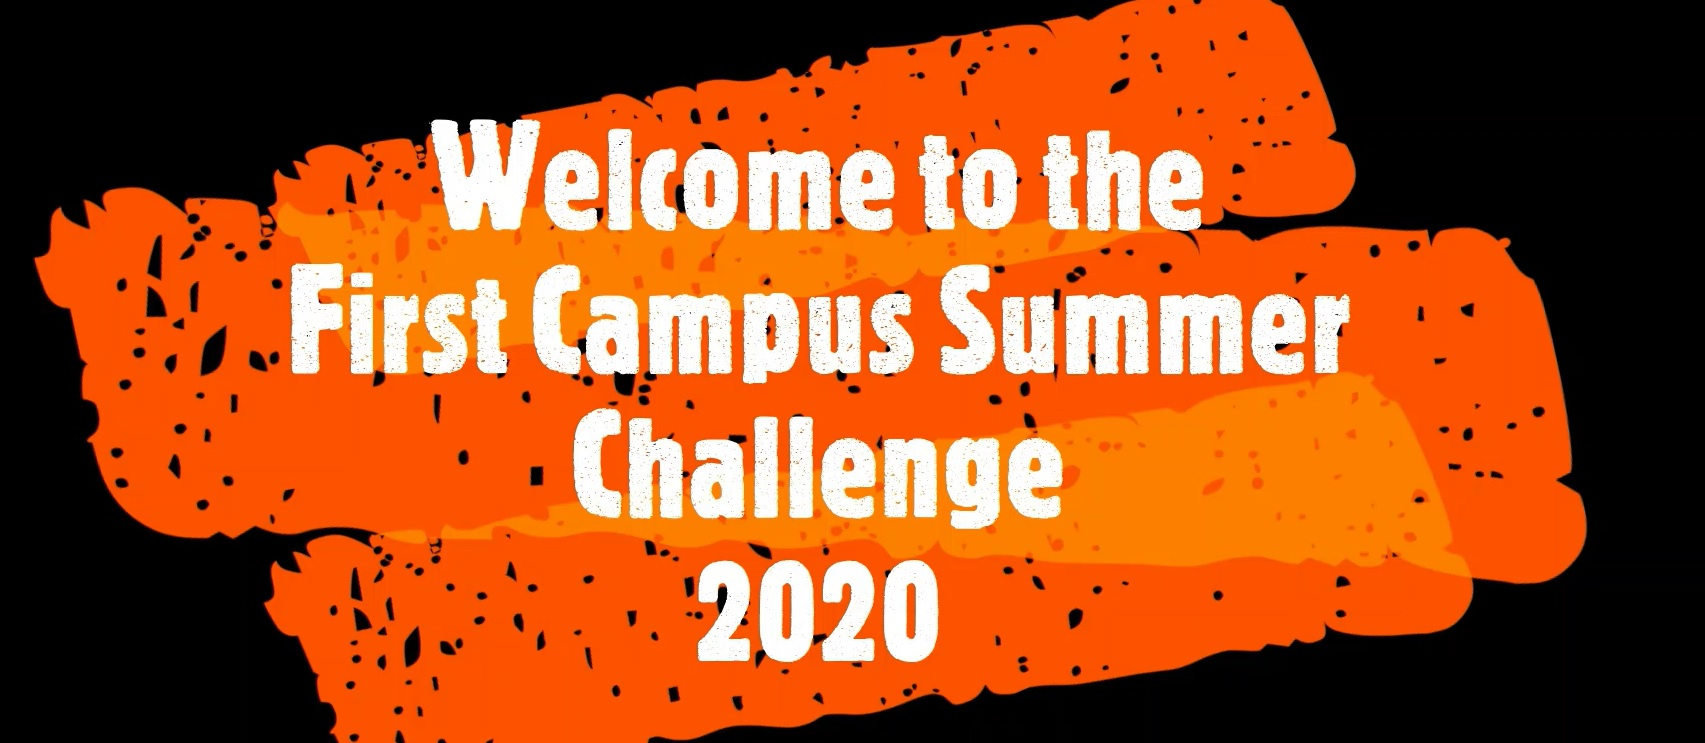 Welcome to the First Campus Summer Challenge!